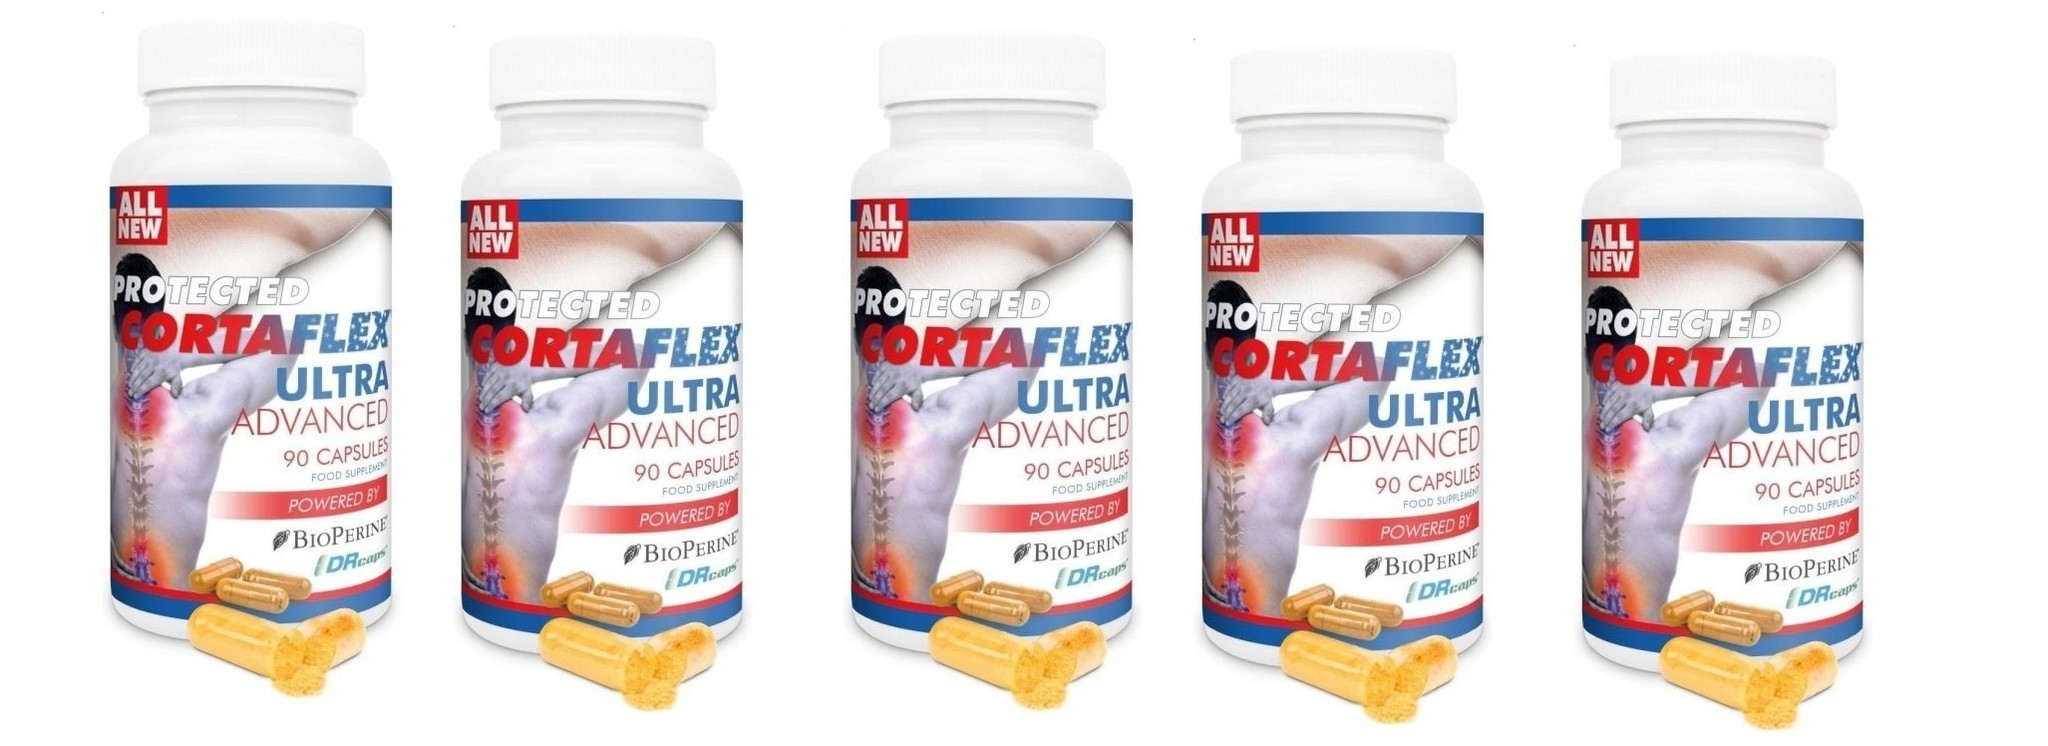 Dental Supps Protected Cortaflex Ultra Advanced, 90 Capsules, 5-packs